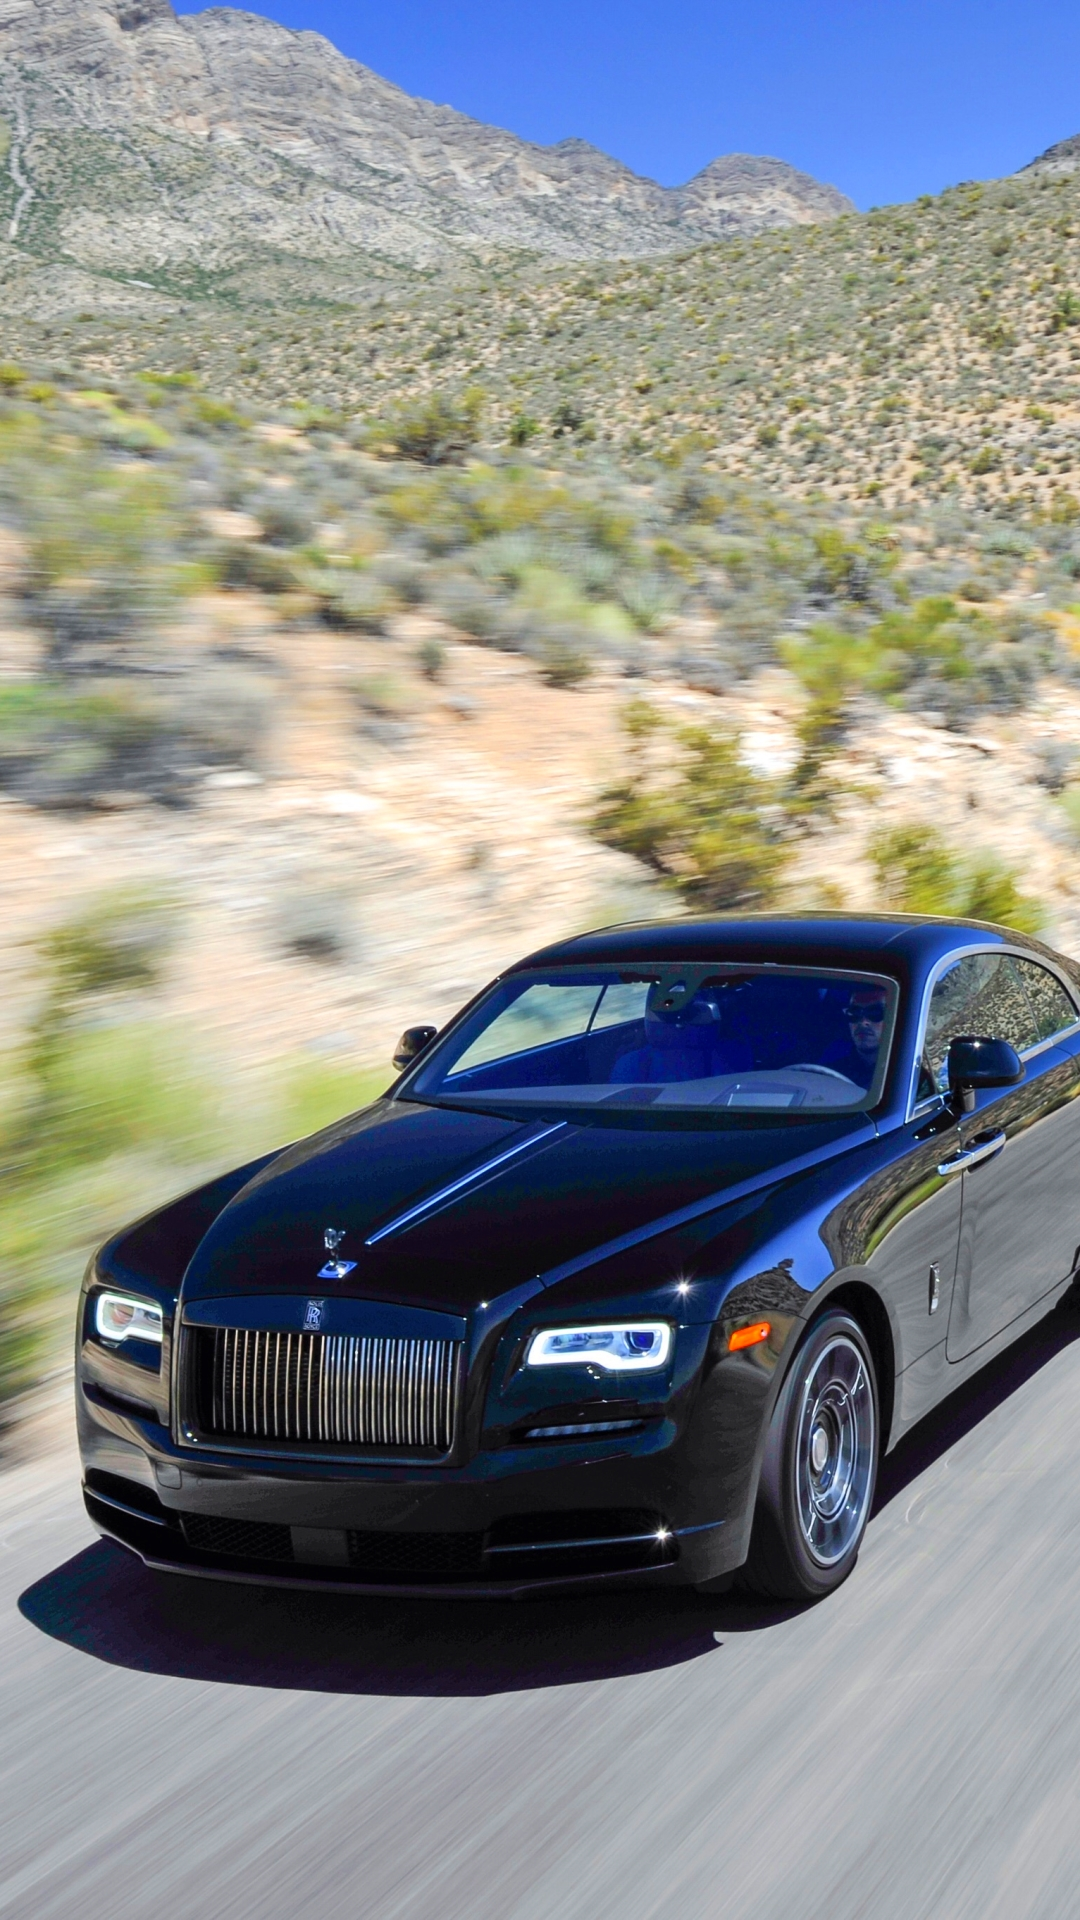 Vehicles Rolls Royce Wraith 1080x1920 Wallpaper Id 642982